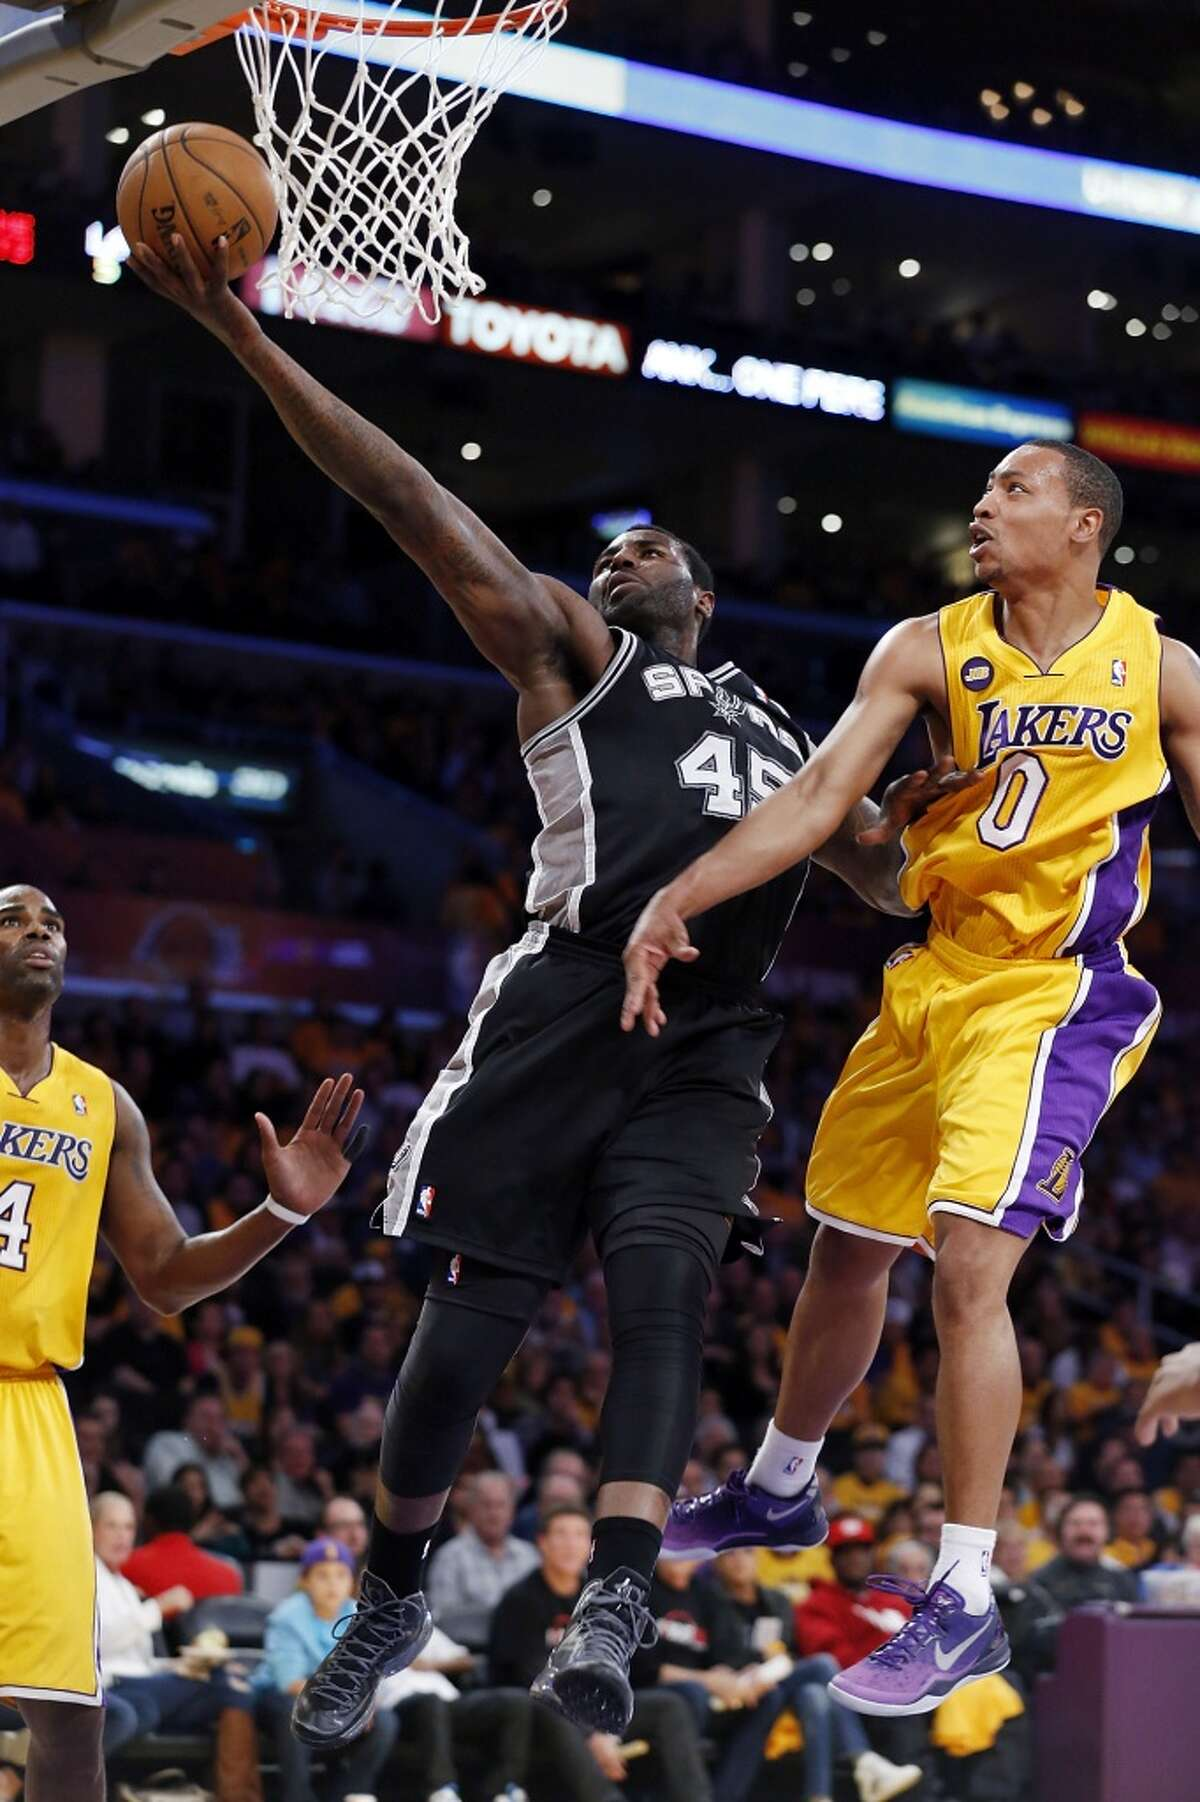 San Antonio Spurs' DeJuan Blair shoots around Los Angeles Lakers' Andrew Goudelock as Los Angeles Lakers' Antawn Jamison (left) looks on during first half action of game 3 in the first round of the NBA Playoffs Friday April 26, 2013 at the Staples Center in Los Angeles, CA.